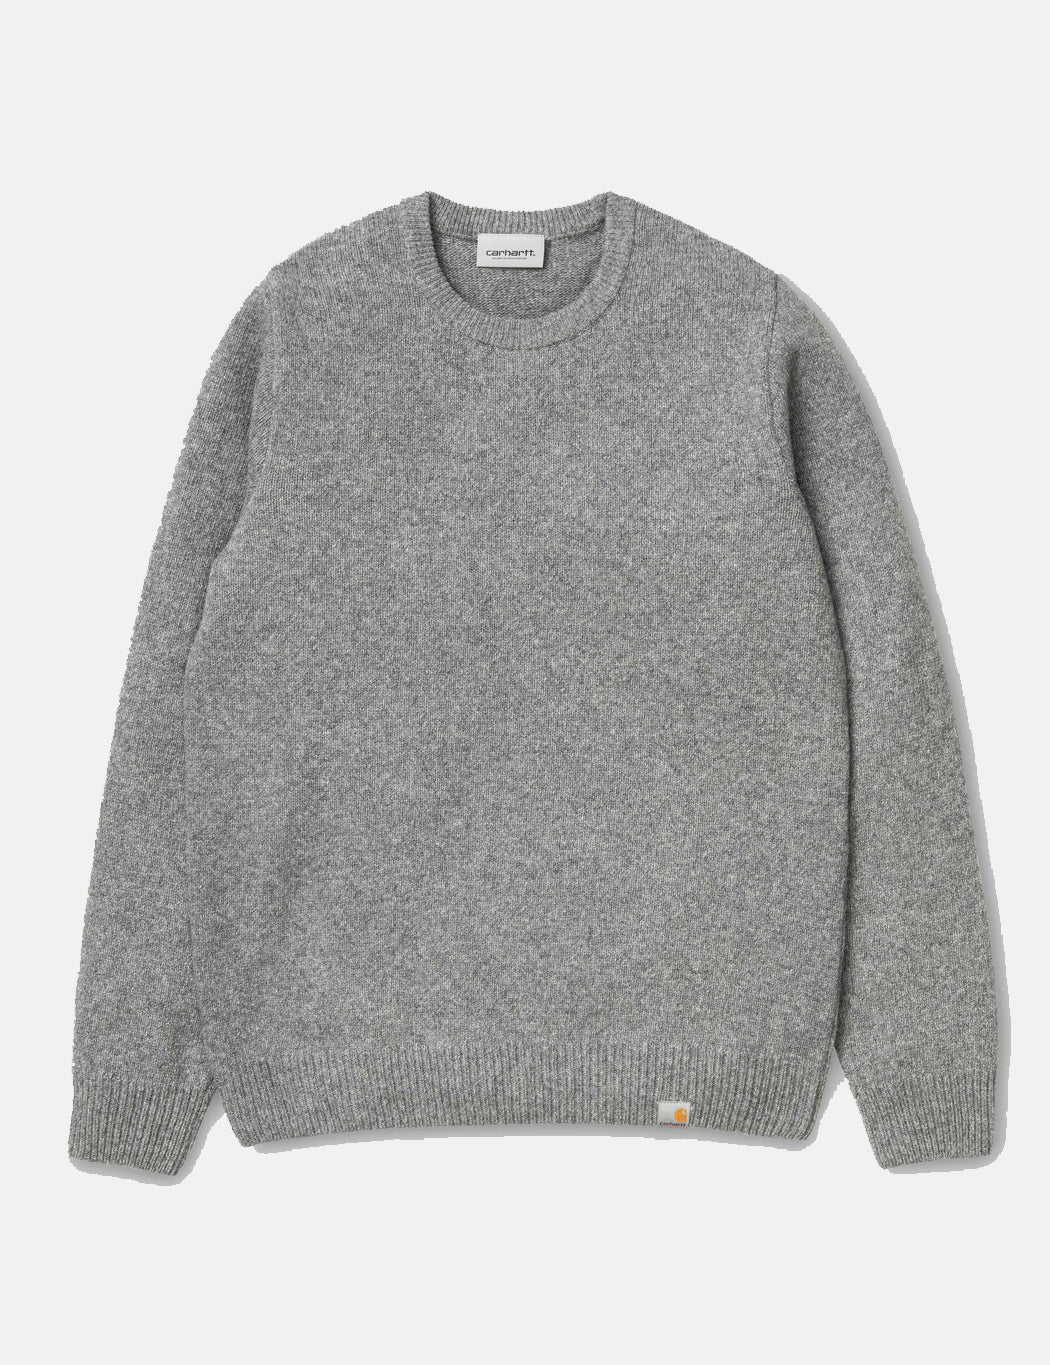 Carhartt Allen Knit Sweatshirt - Grey Heather